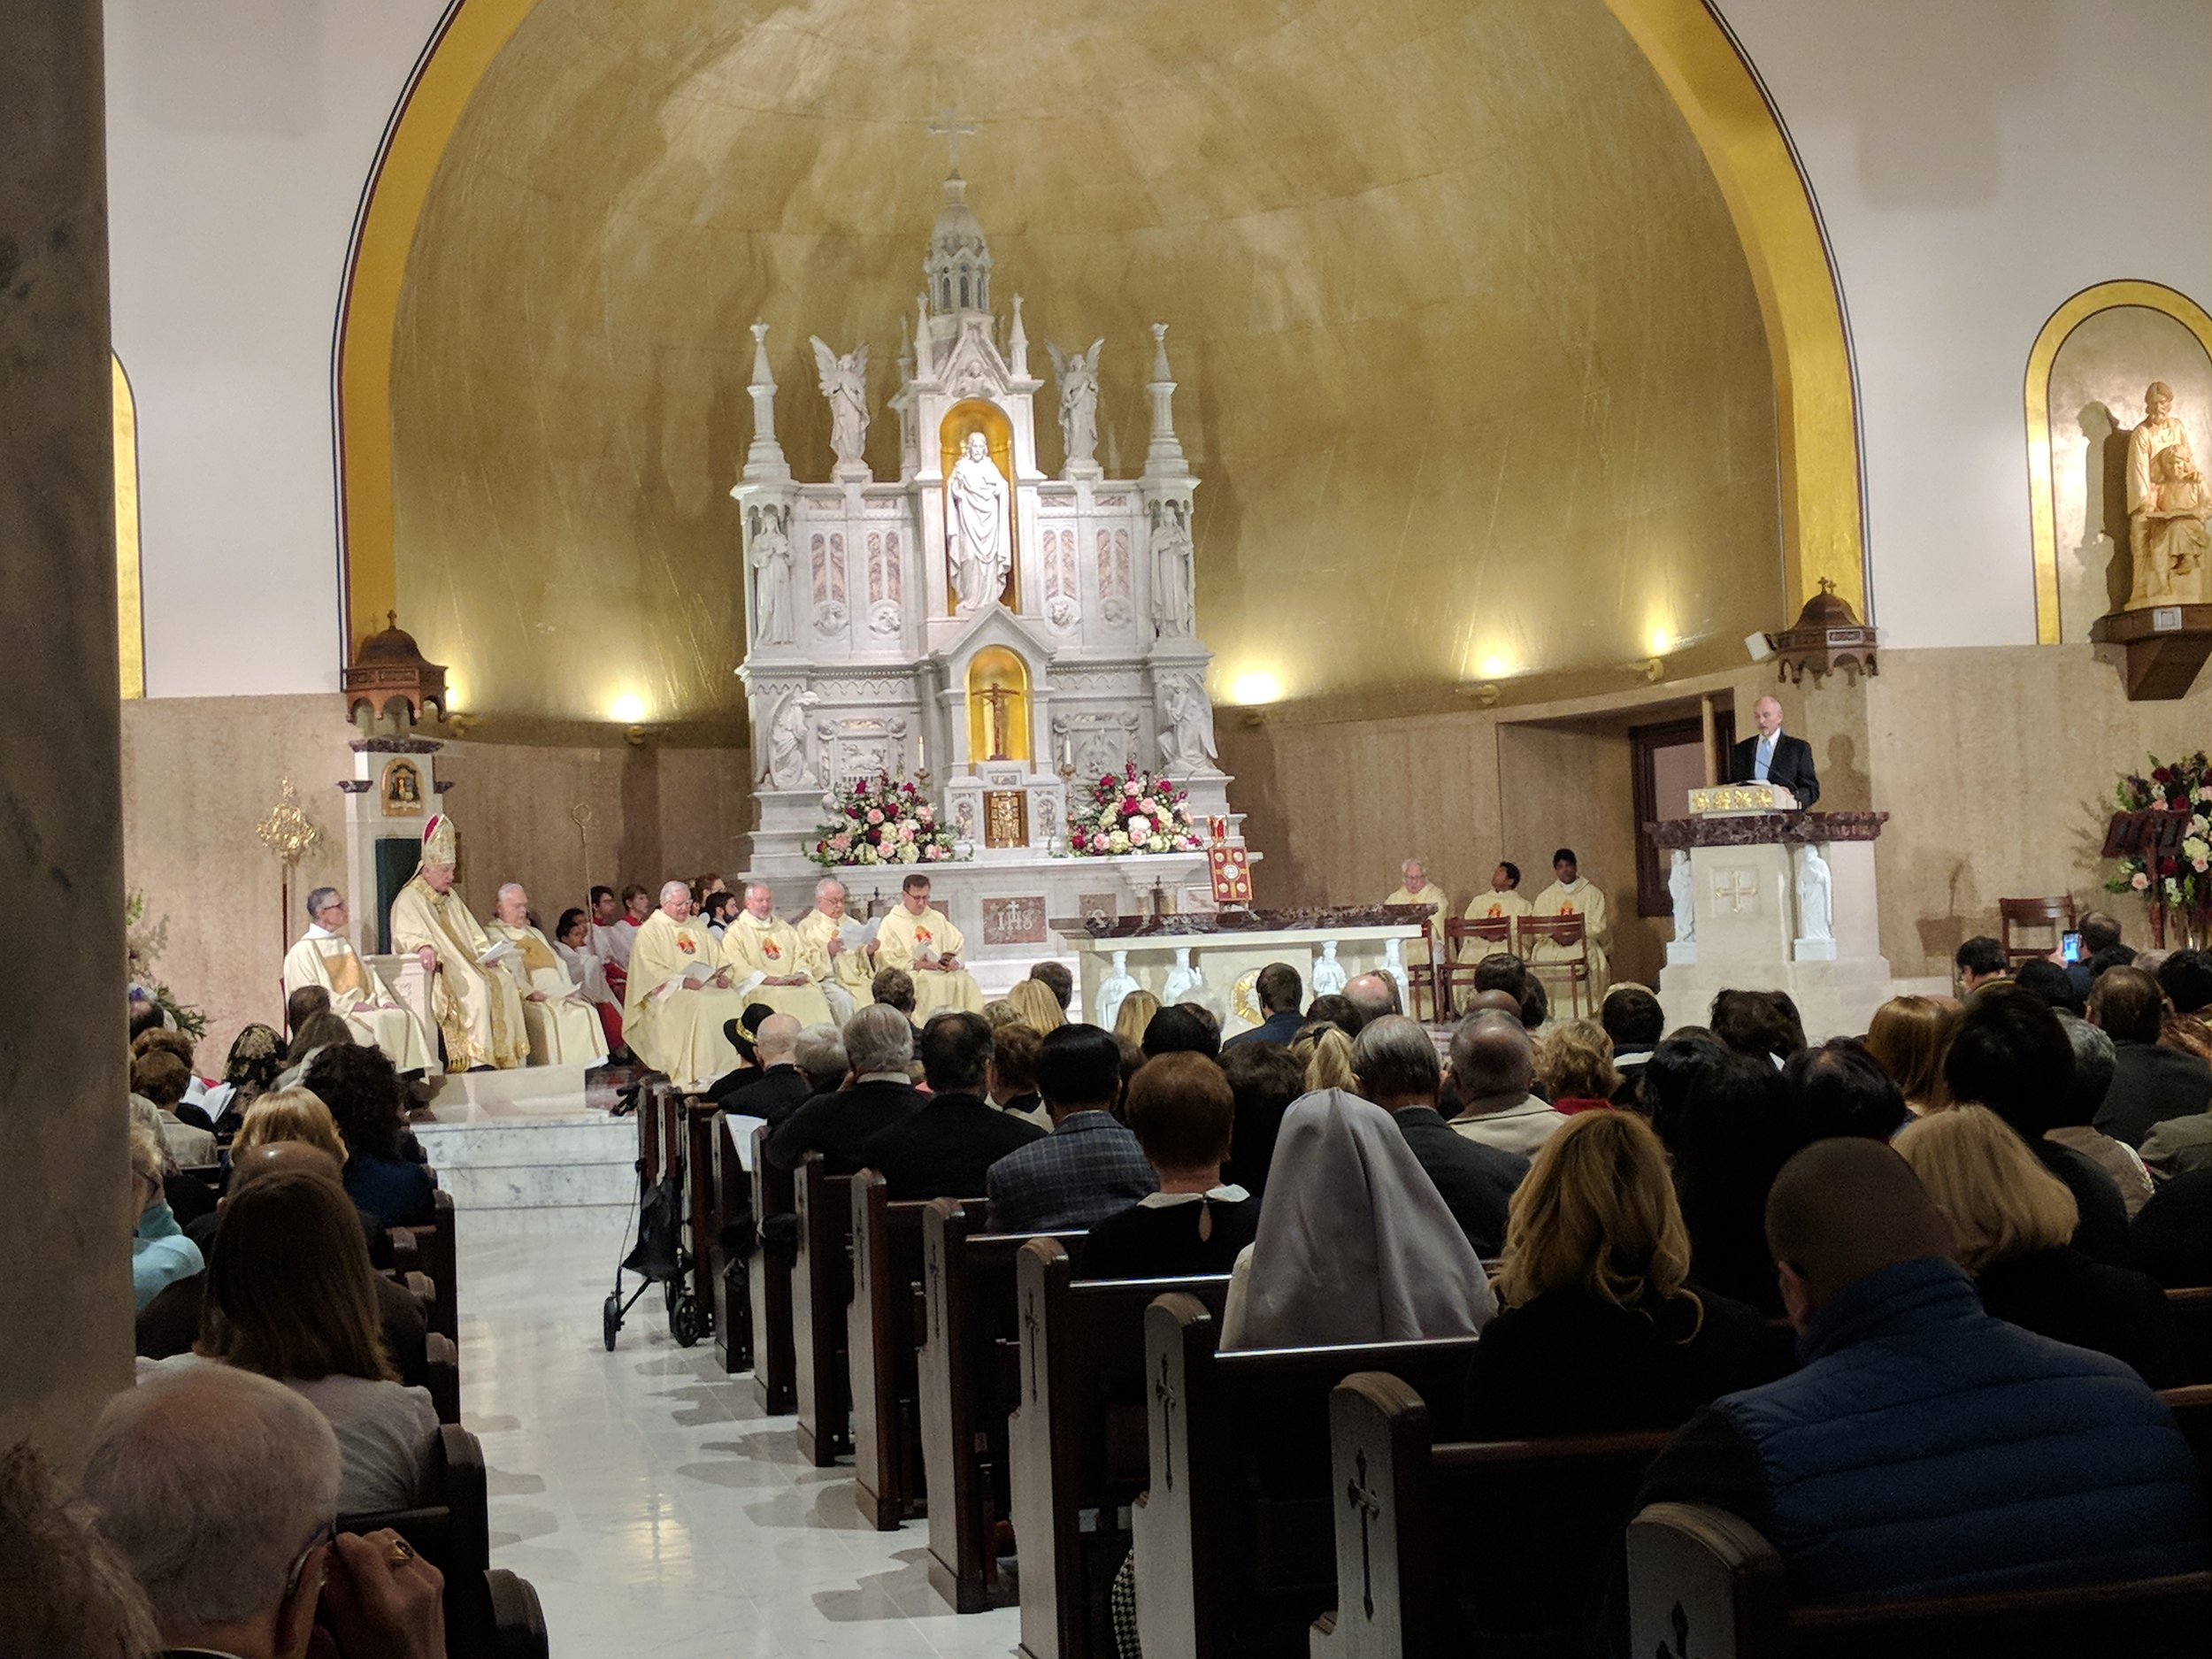 A lector reads from the Pulpit during the dedication mass.